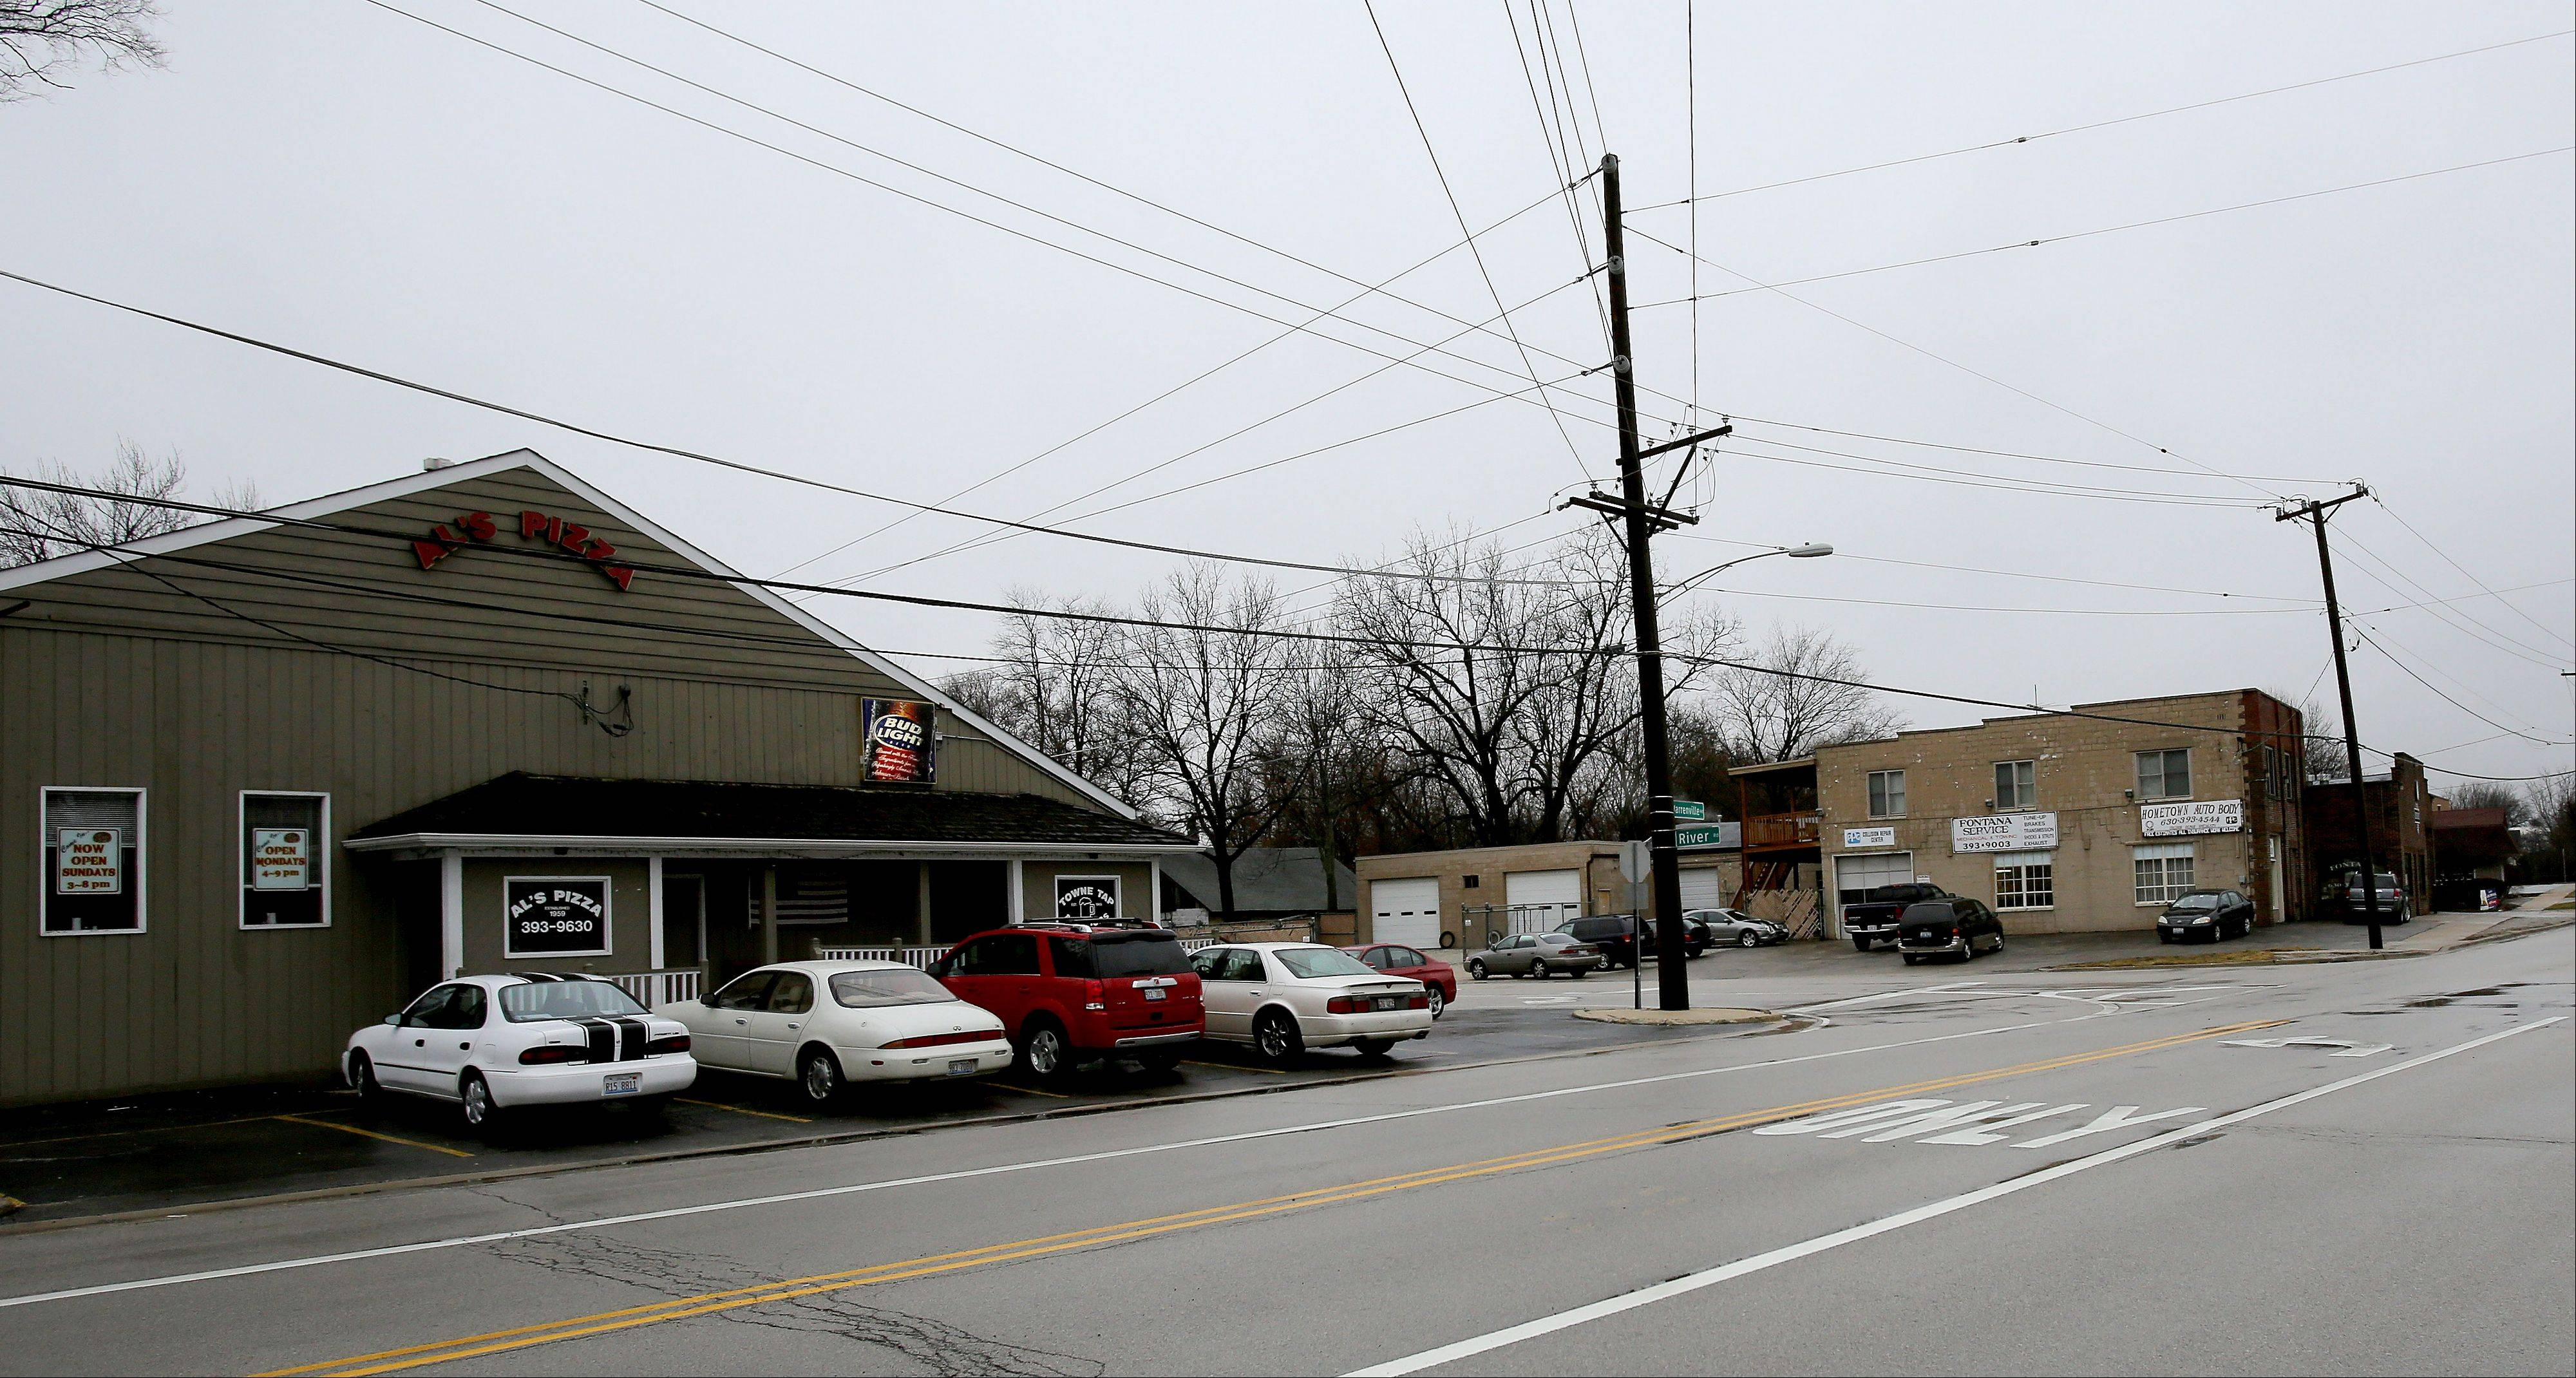 A redevelopment plan Warrenville created has a list of recommendations for the Old Town area. One suggestion is a proposed realignment of the junction of Batavia, Warrenville and River roads into either a roundabout or four-way intersection.